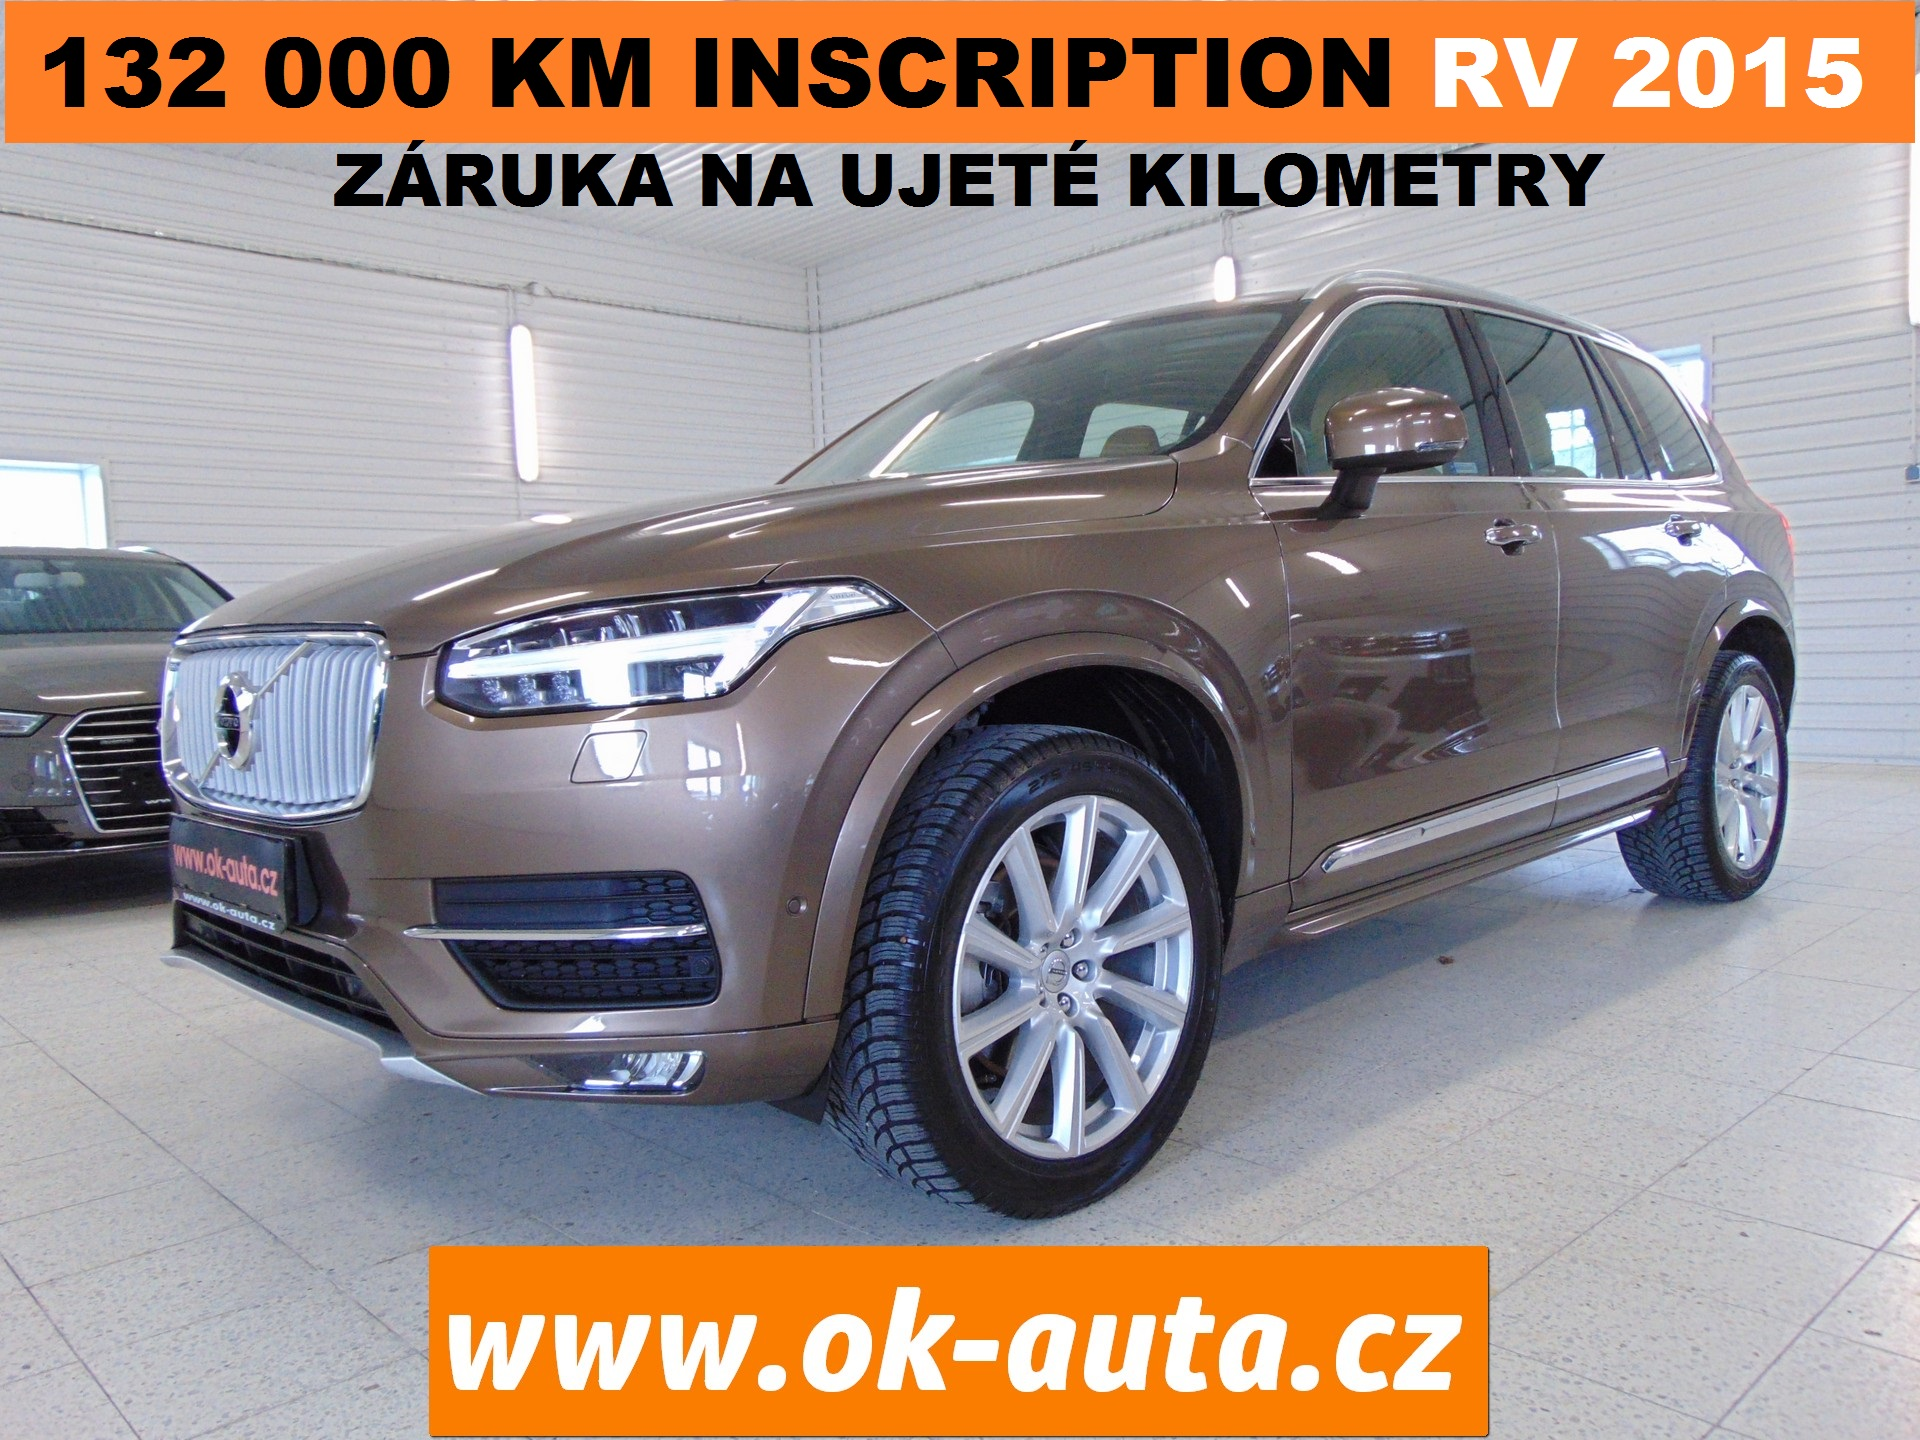 Volvo XC 90 2.0 D Inscription 08/2015